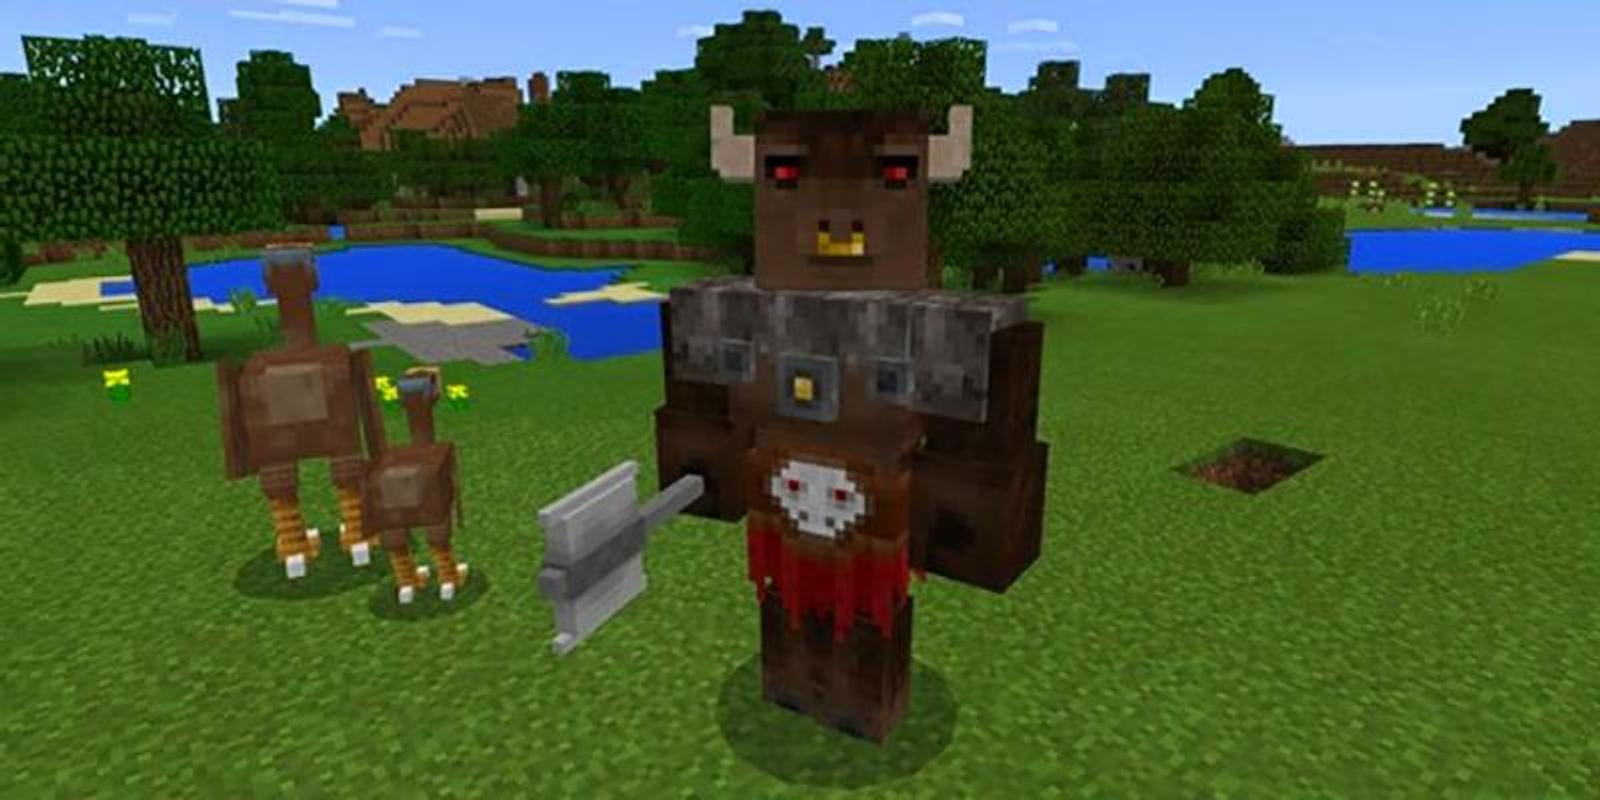 Amazing Mobs Addon For Minecraft PE APKDownload Kostenlos - Minecraft kostenlos spielen mit download